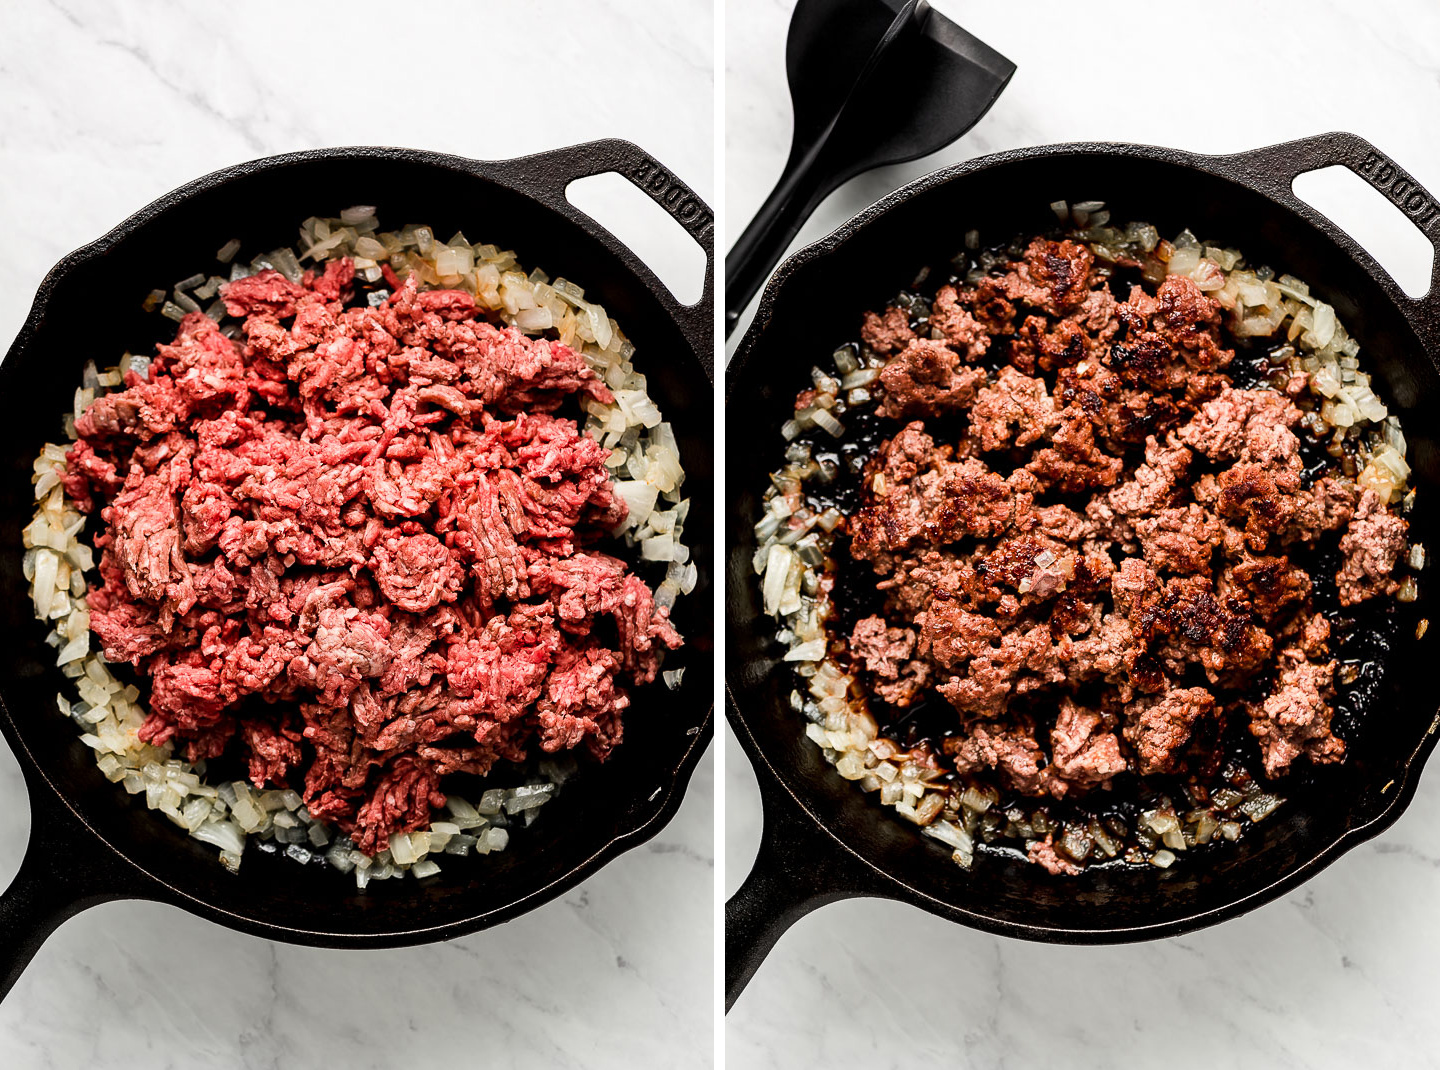 Raw ground beef in a cast iron skillet with onions pushed out to the sides; ground beef seared in pan.